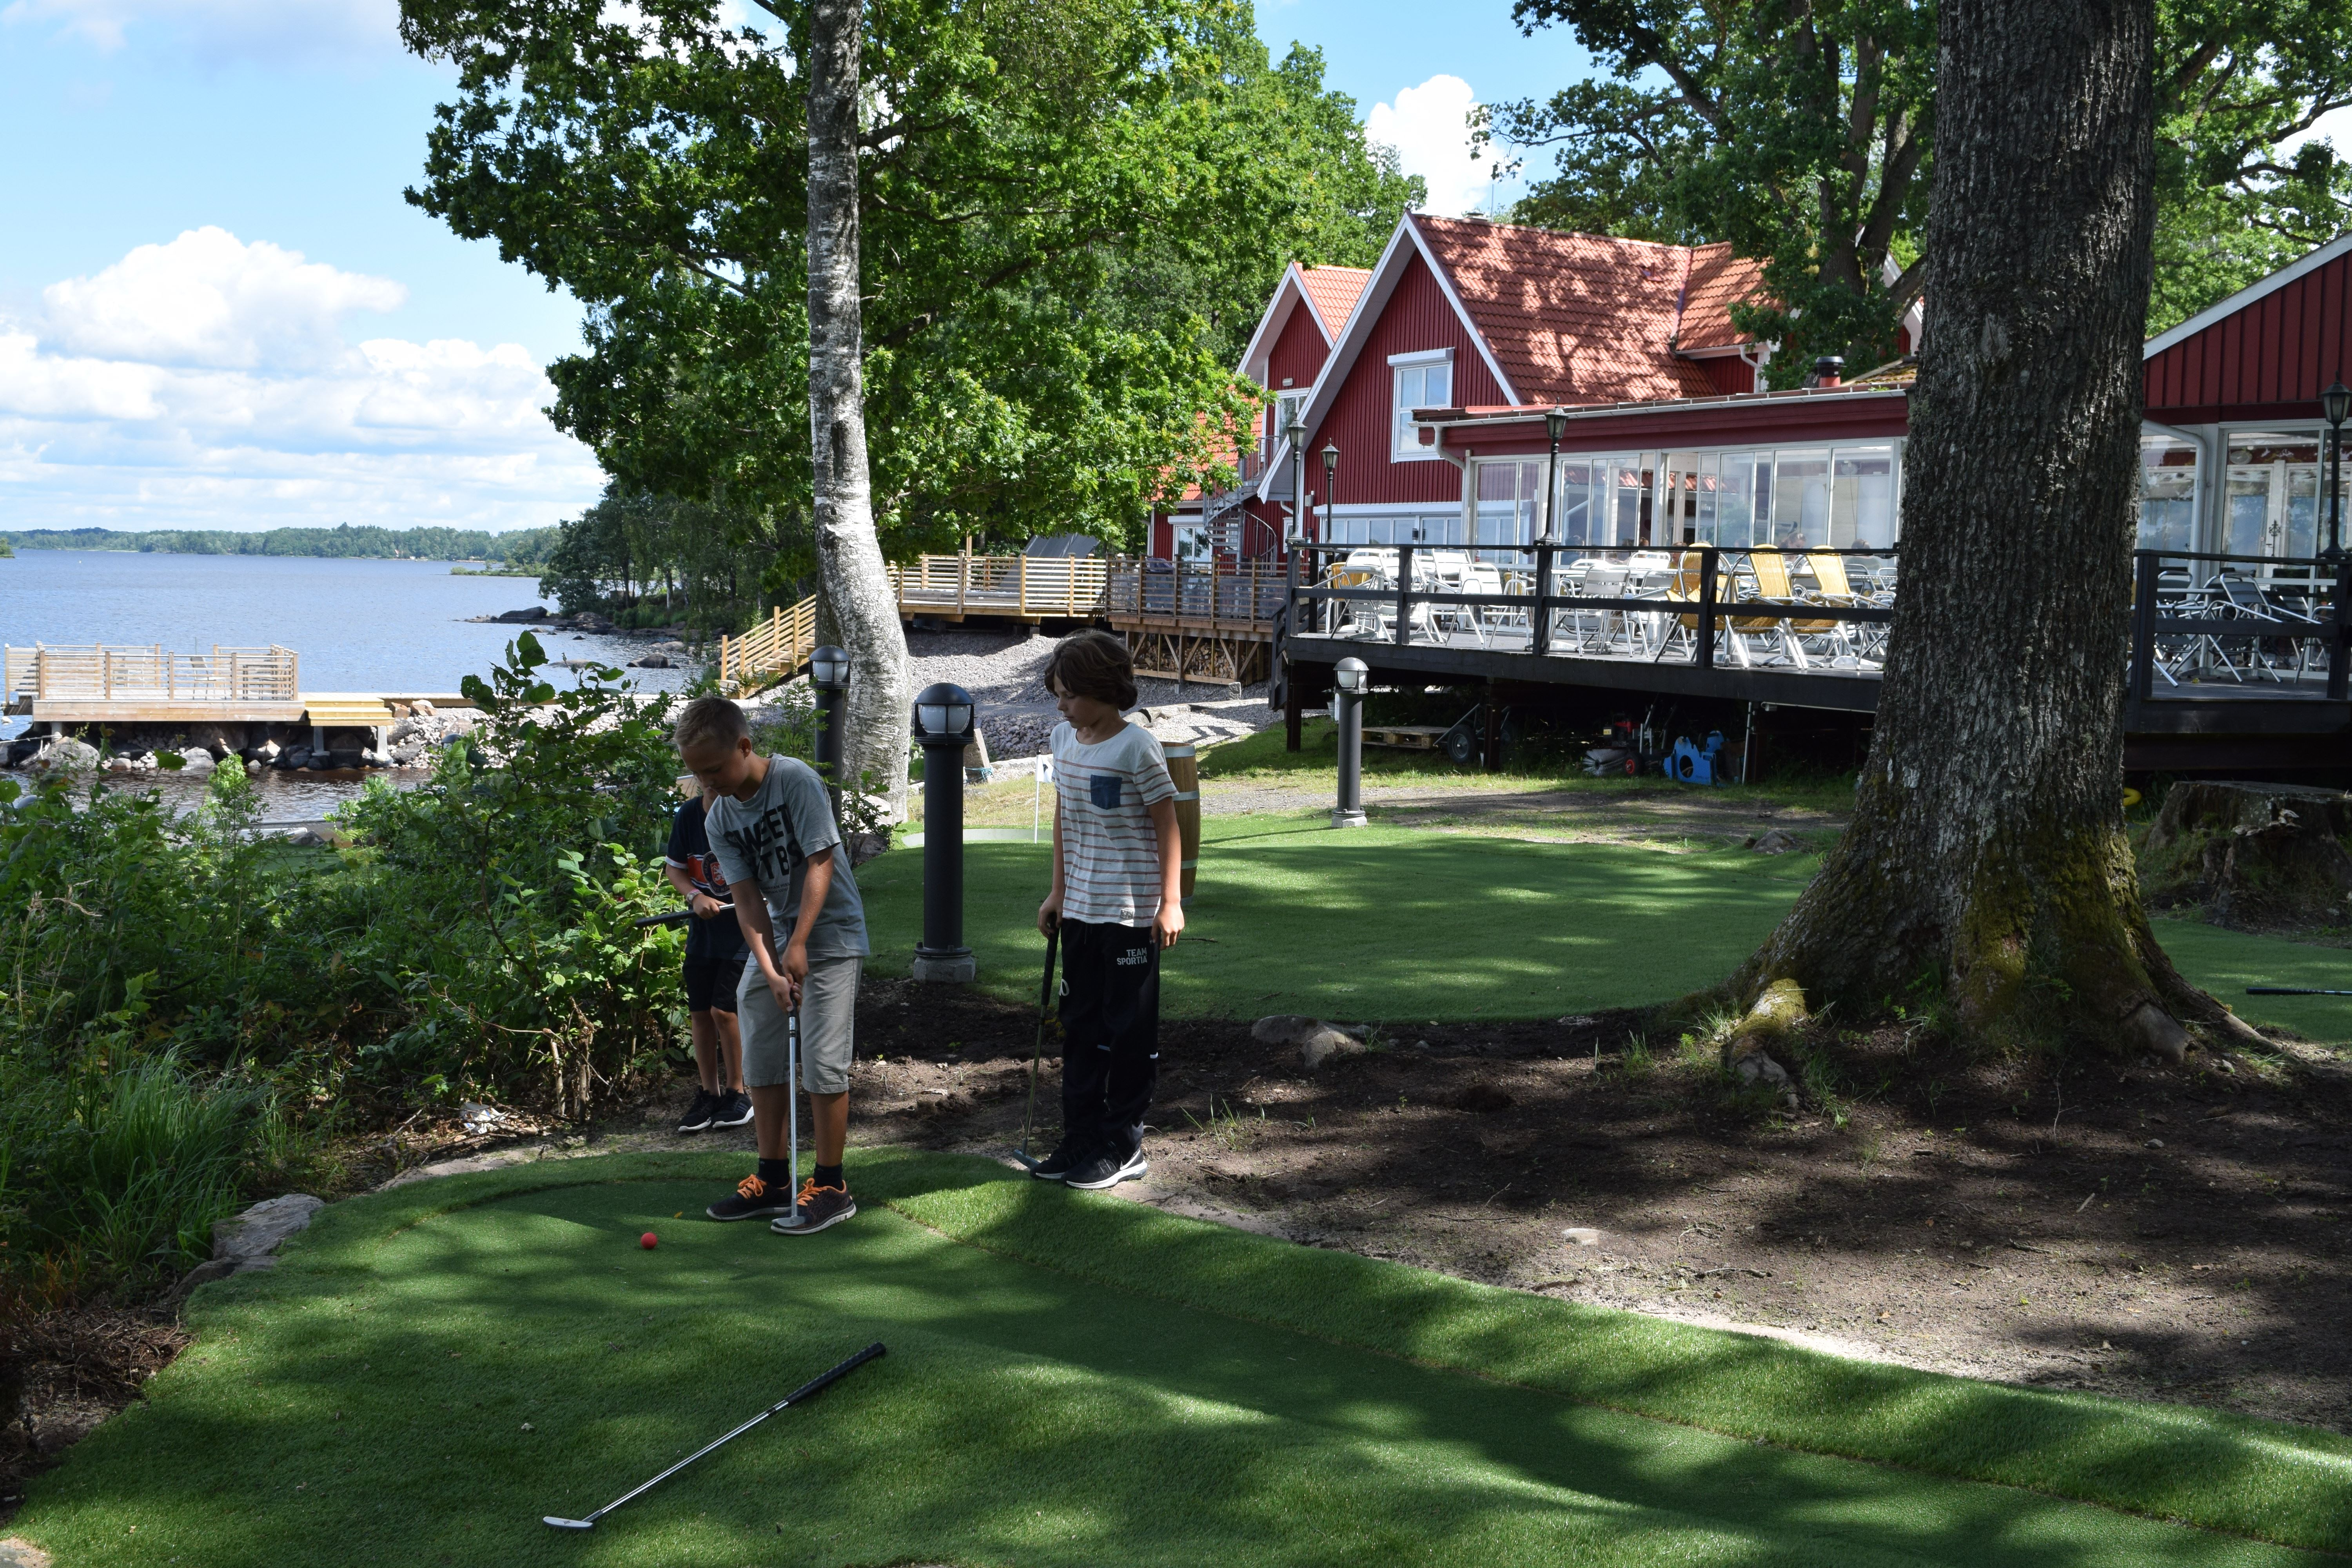 Adventure minigolf at Sjöstugan Camping